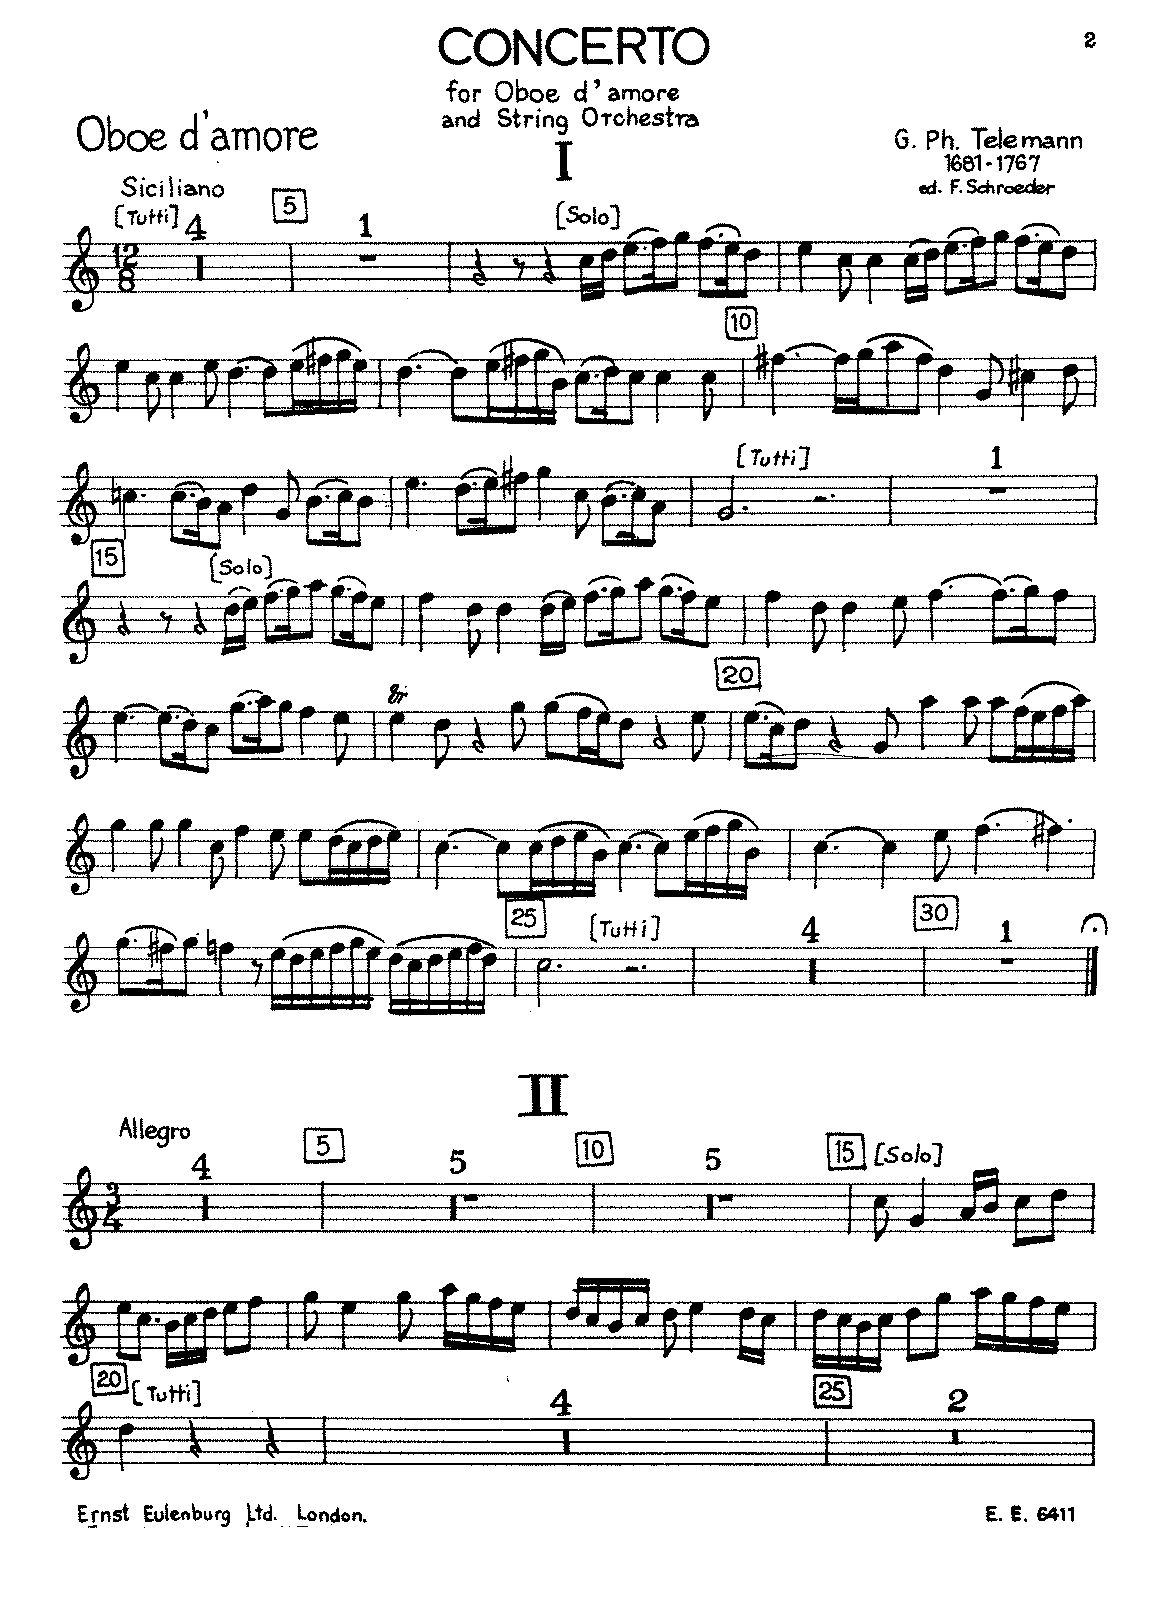 PMLP158970-Telemann - Oboe d'amore concerto in A major (parts).pdf